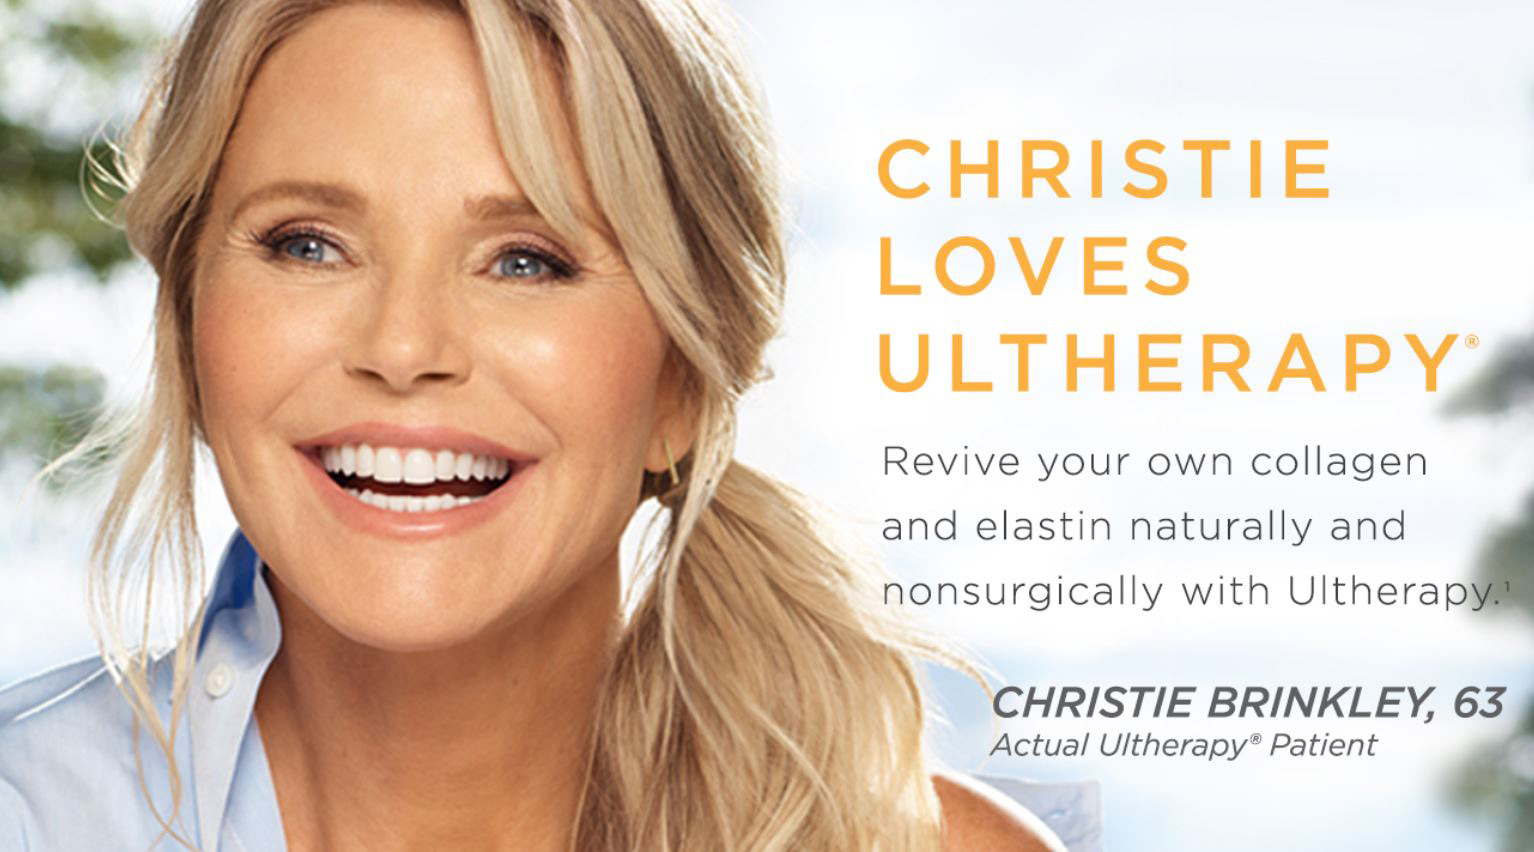 Ultherapy with Christie Brinkley